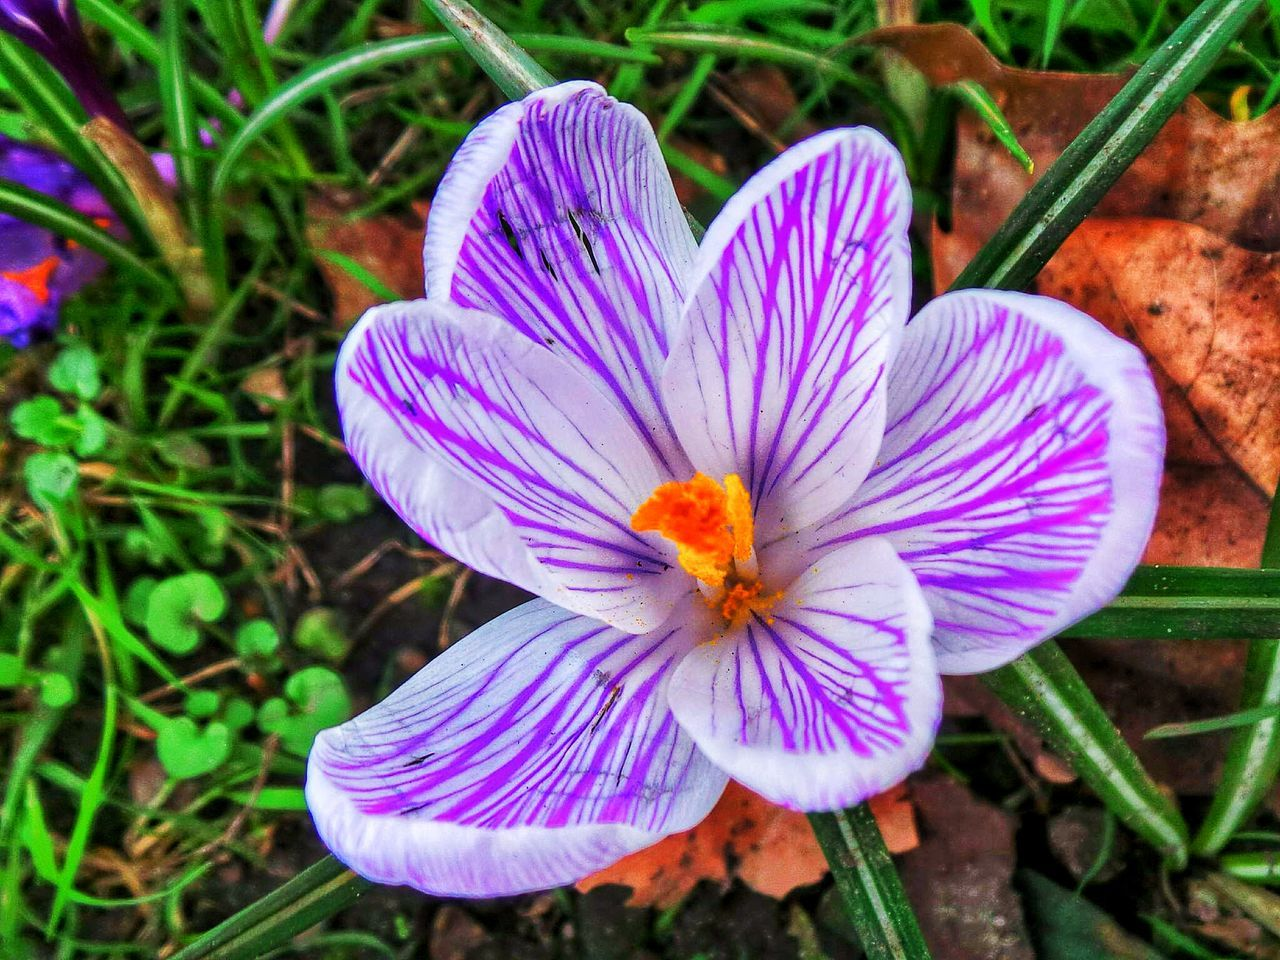 flower, petal, growth, flower head, nature, high angle view, freshness, fragility, purple, beauty in nature, outdoors, field, day, no people, plant, close-up, crocus, grass, blooming